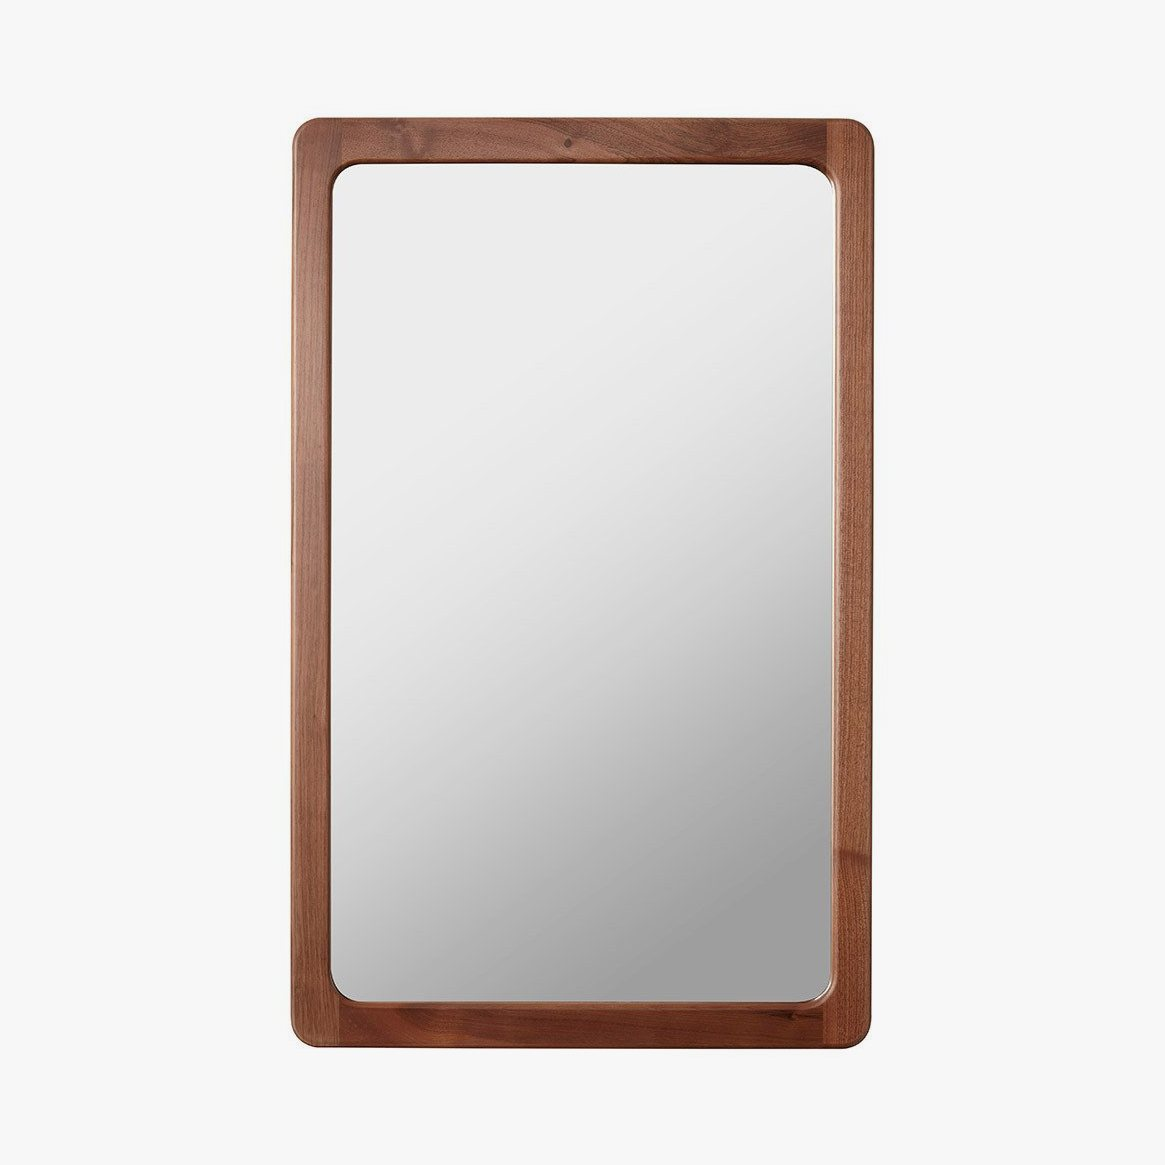 Agnes Mirror small, walnut.